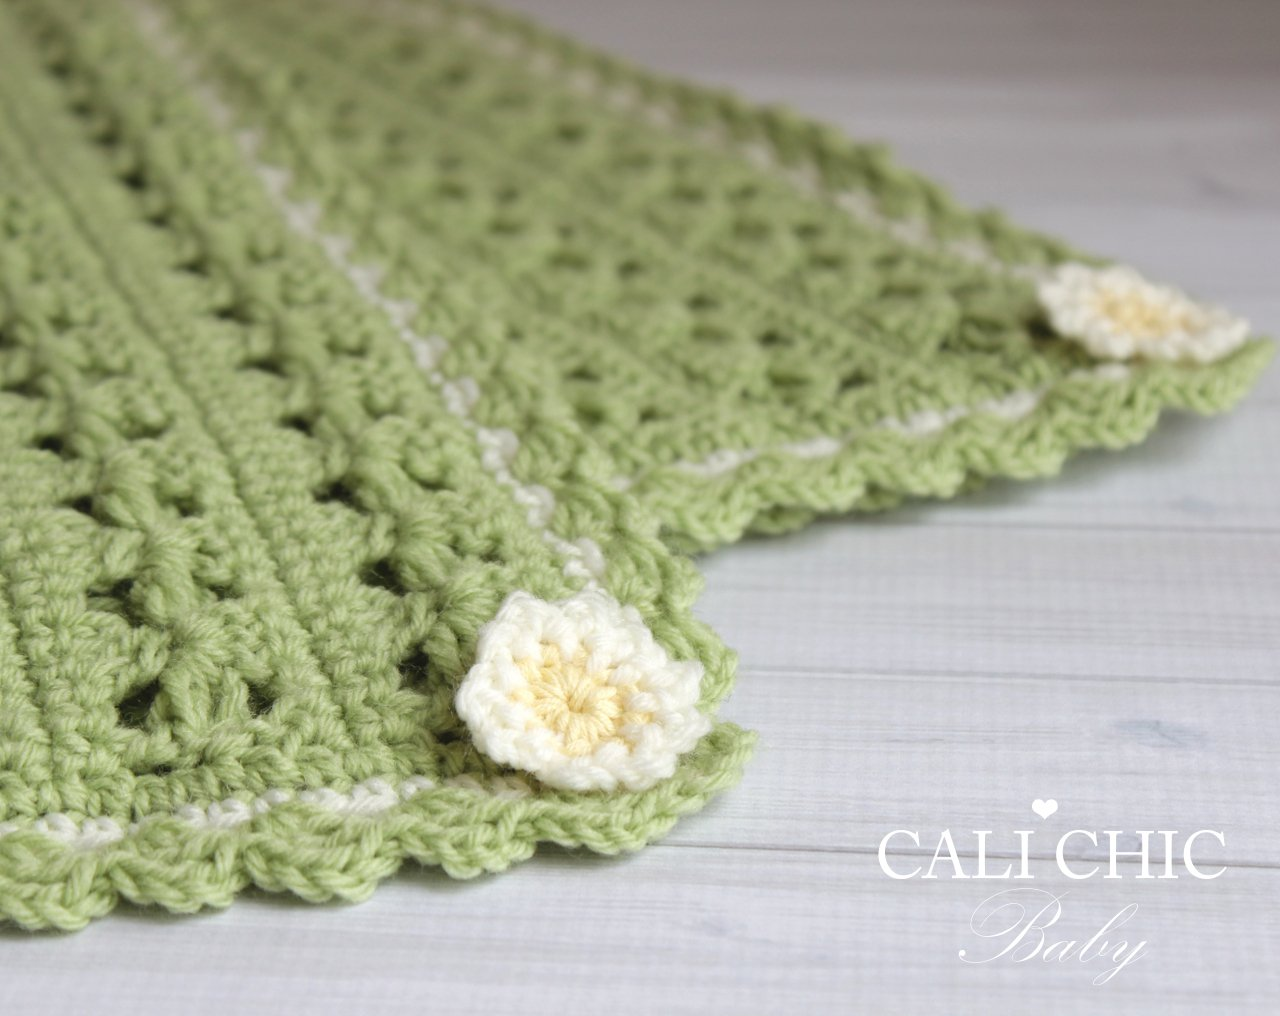 Daisy lovecrochetbaby blanketpattern 21 cali chic baby daisy love crochet baby blanket pattern 21 izmirmasajfo